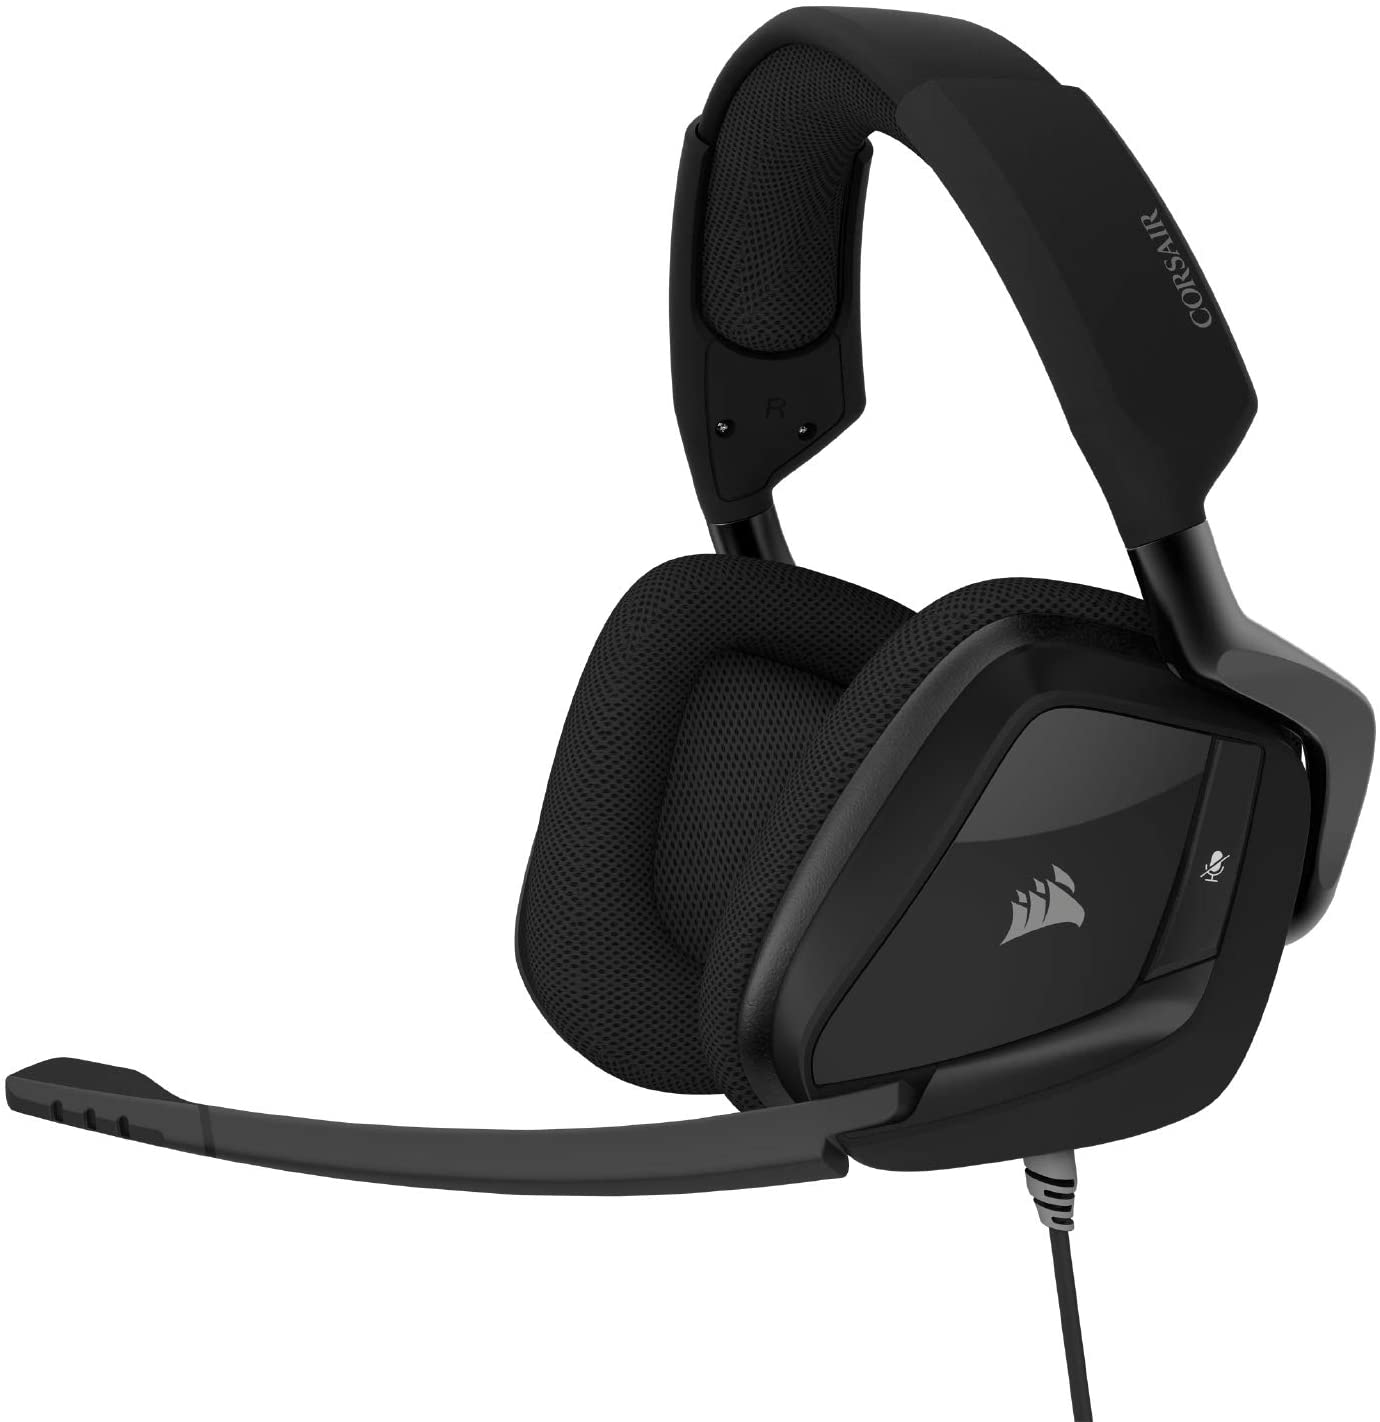 Corsair - Auriculares Inalambricos Gaming Premium - 7.1 Surround Sound